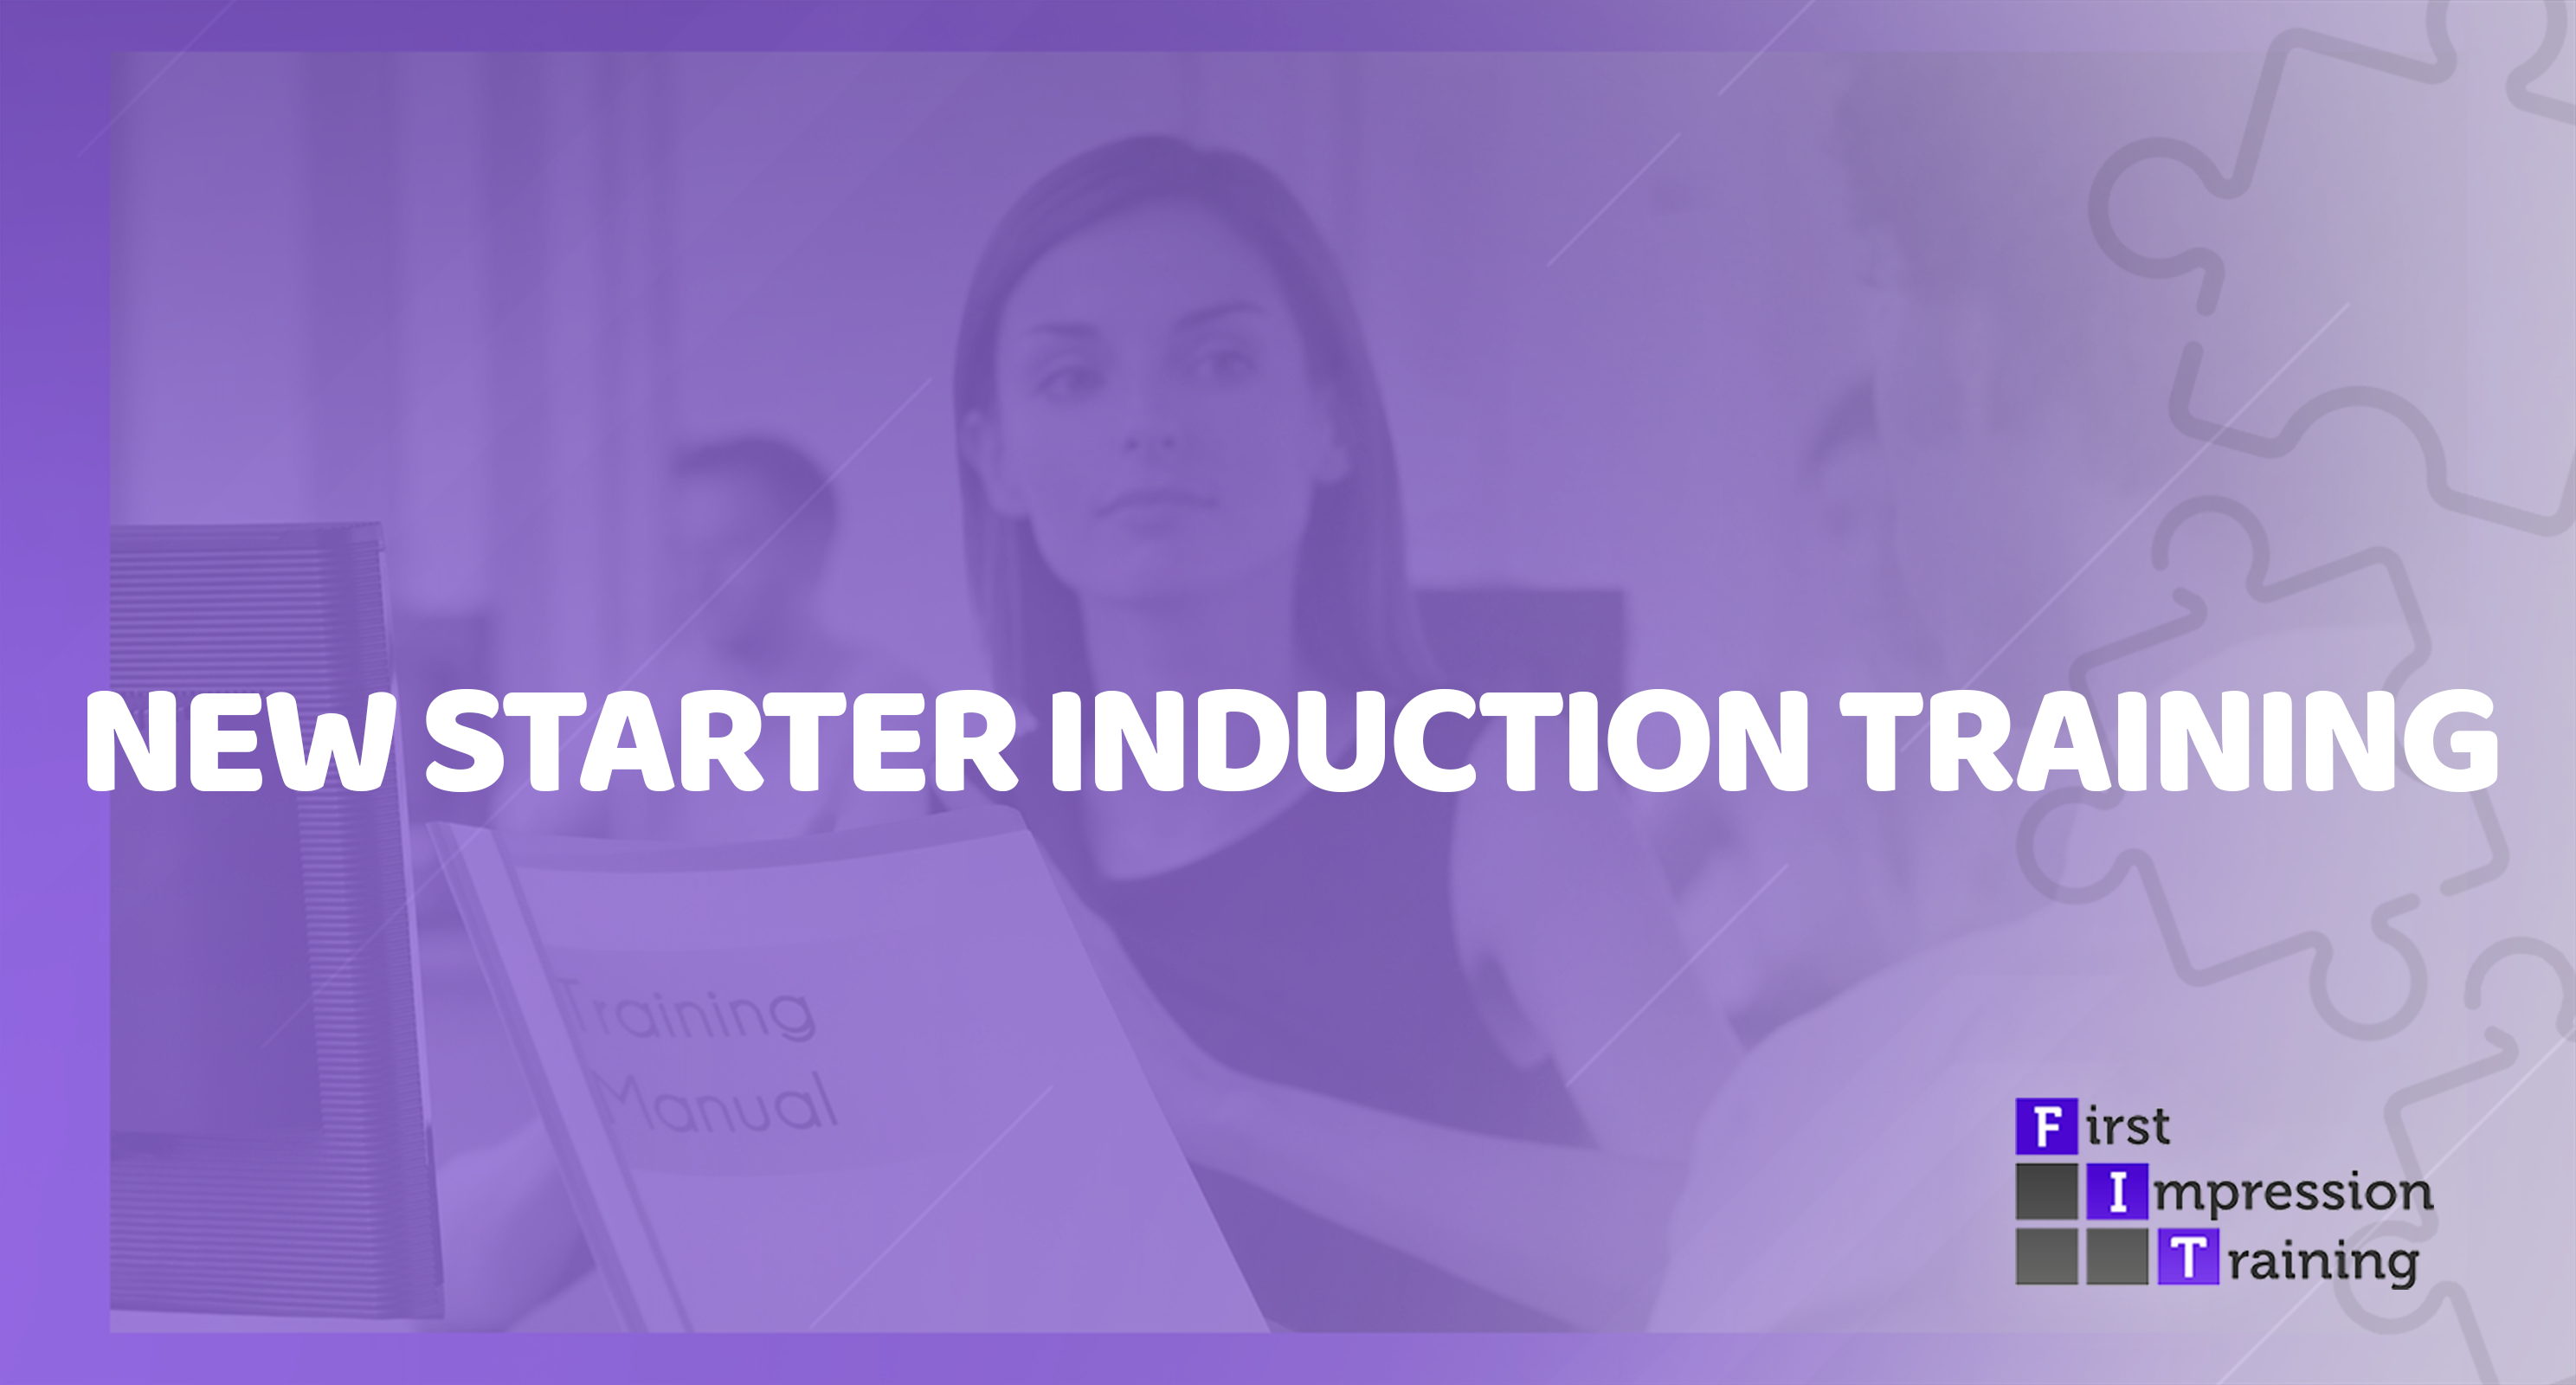 What should a new starter induction training programme include? How long should the induction process be?